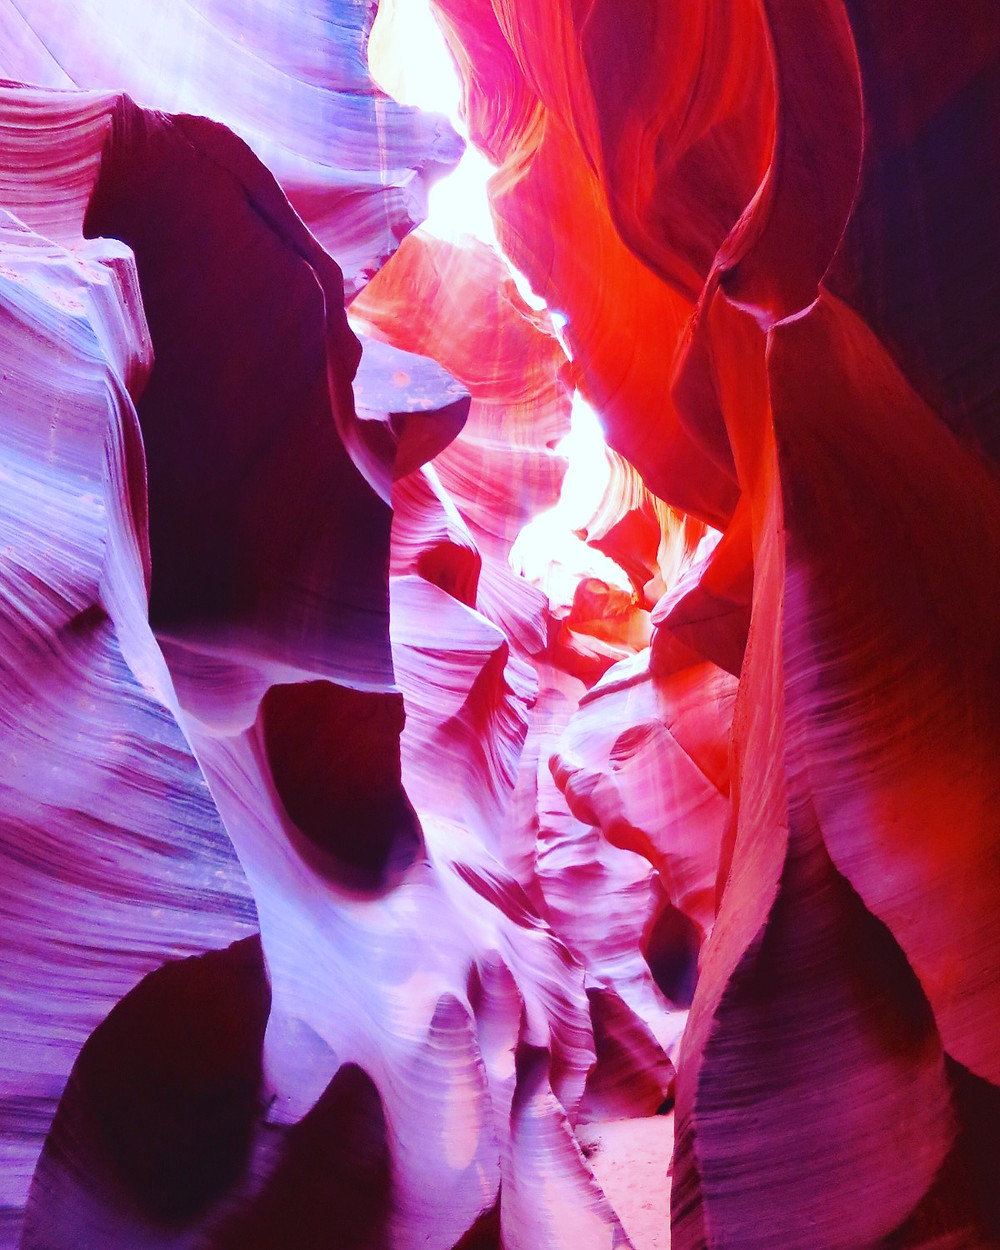 Arizona is photographer's dream read on xoxojho travel blog for more beautiful photographs of lower antelope canyon. beautiful gorgeous colors